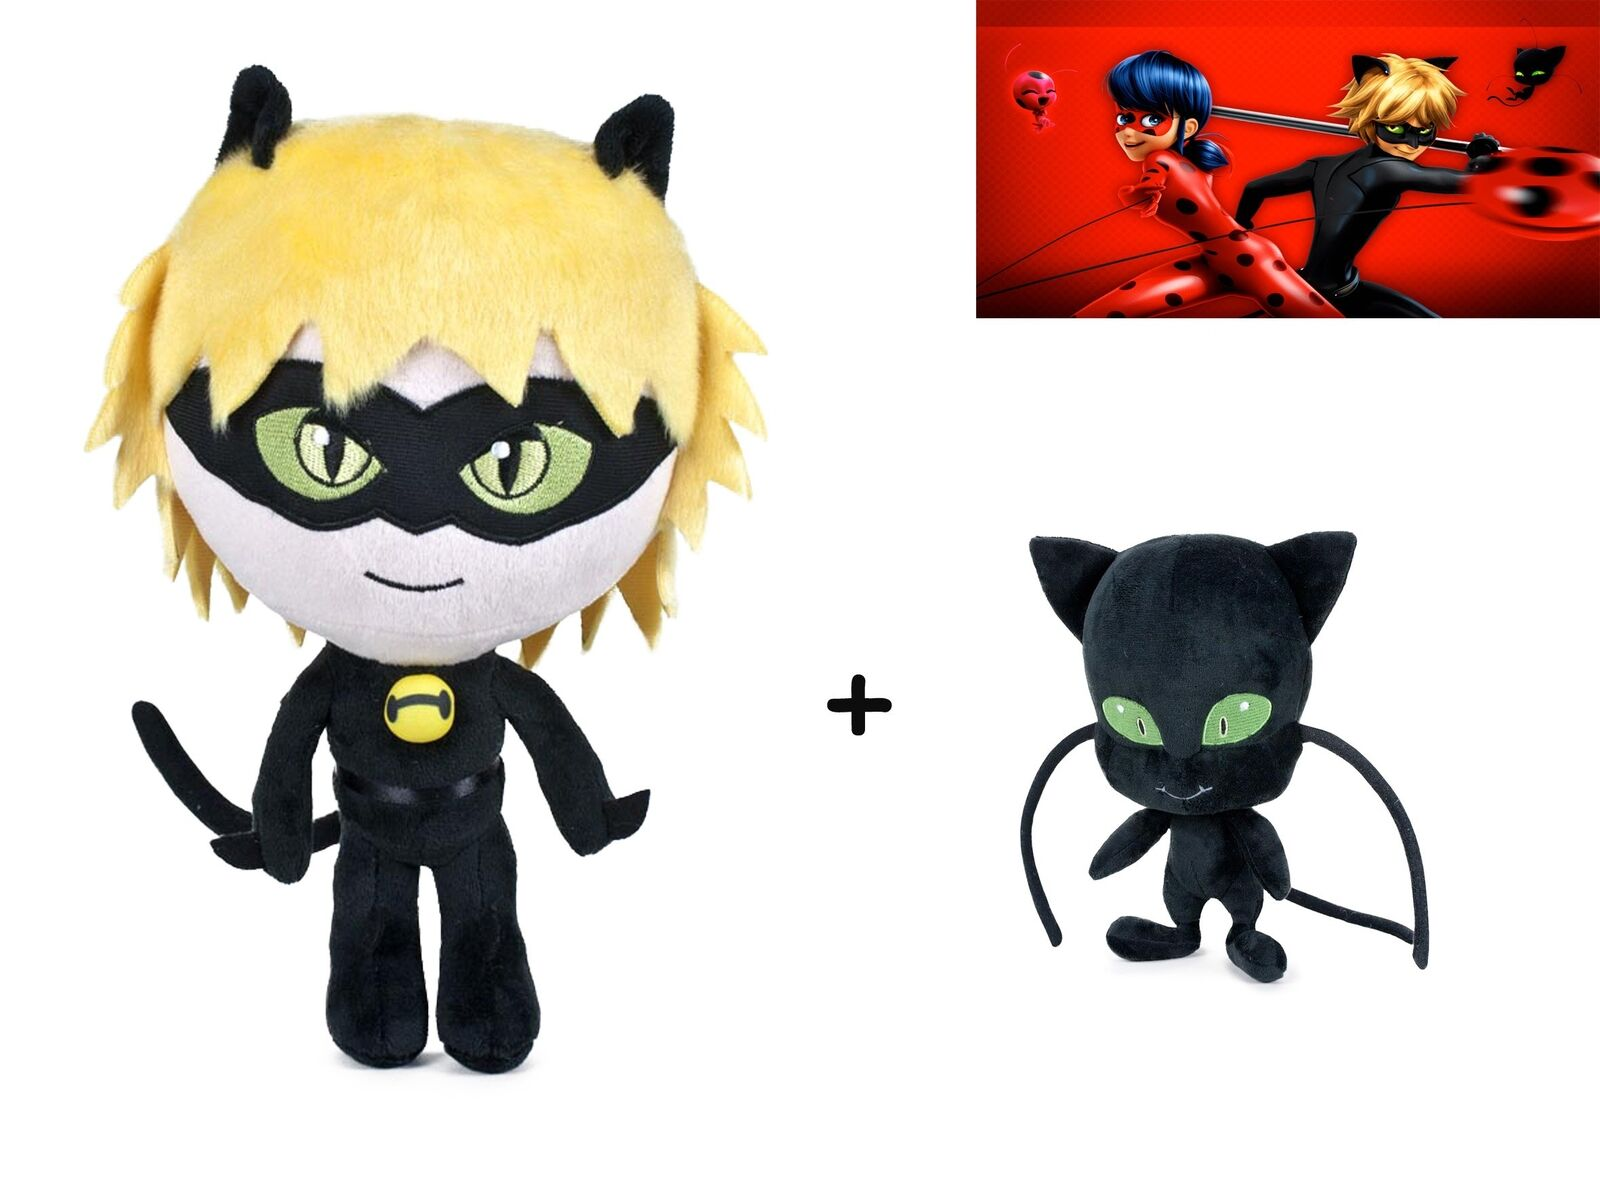 Miraculous: Tales of Ladybug: Plush Toy CAT NOIR 16